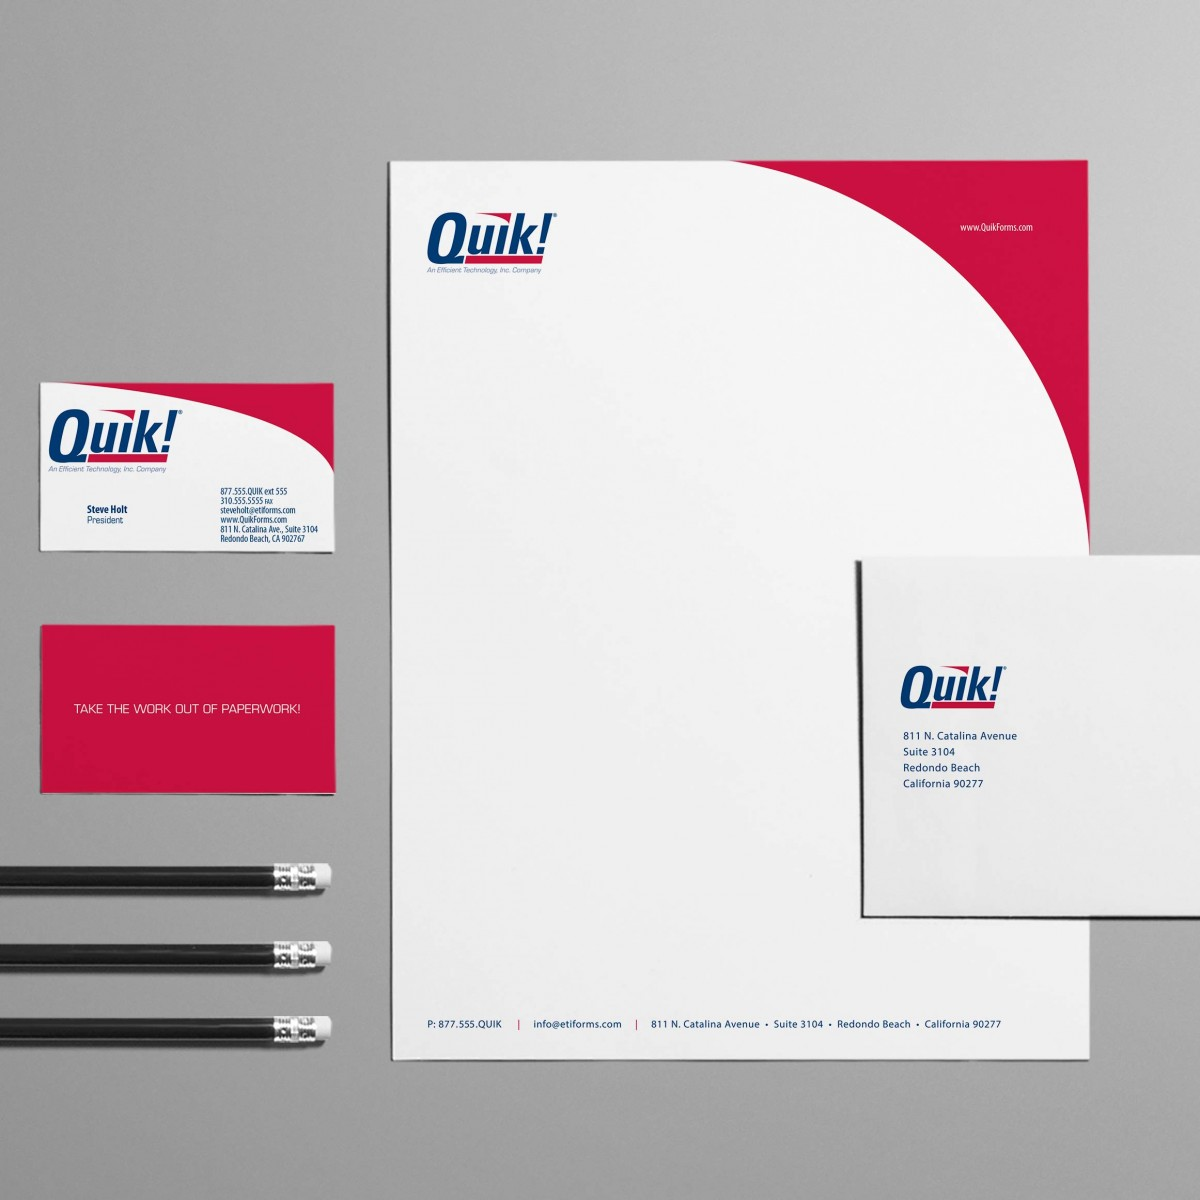 Quik! stationery system